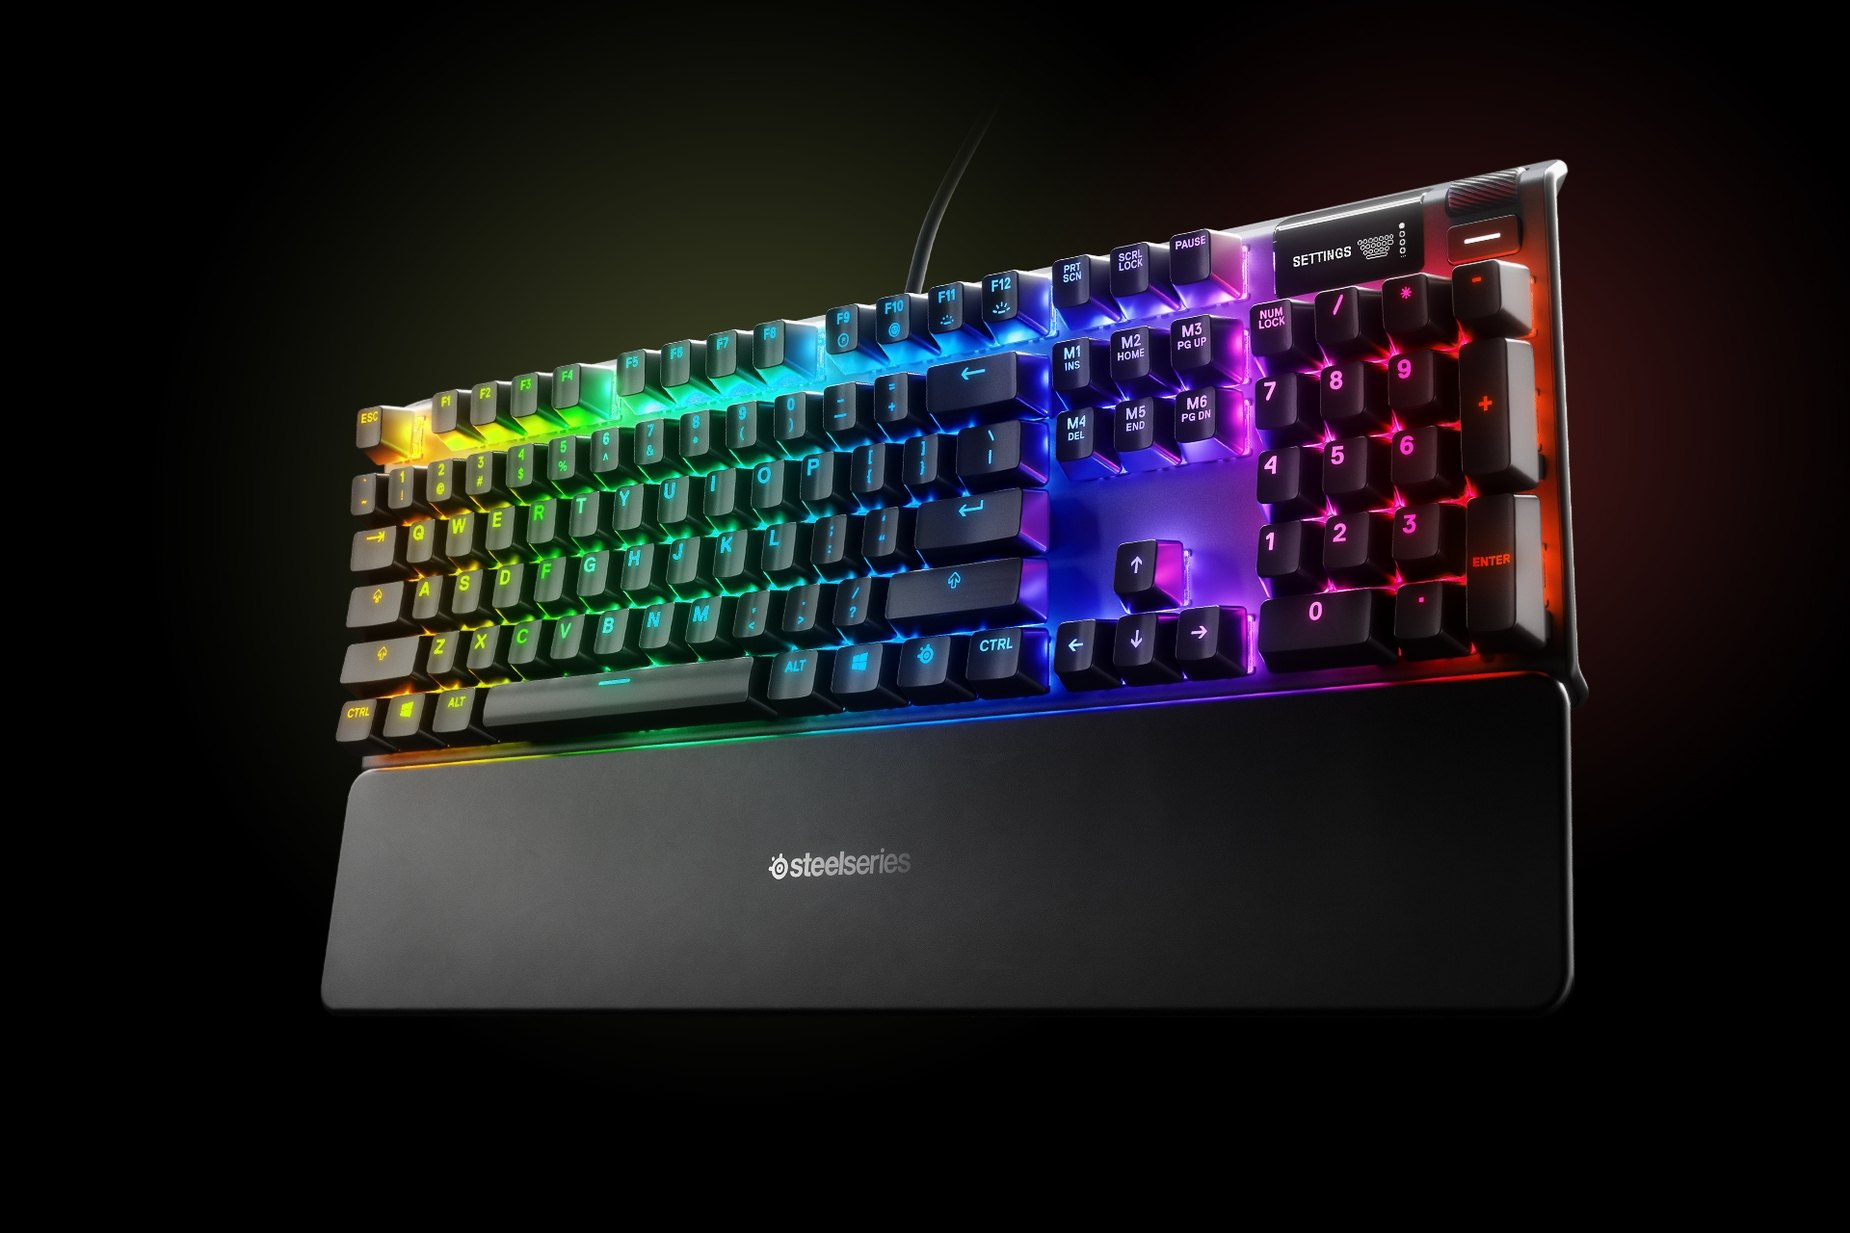 Nordic - Apex 7 (Red Switch) gaming keyboard with the illumination lit up on dark background, also shows the OLED screen and controls used to change settings and adjust audio